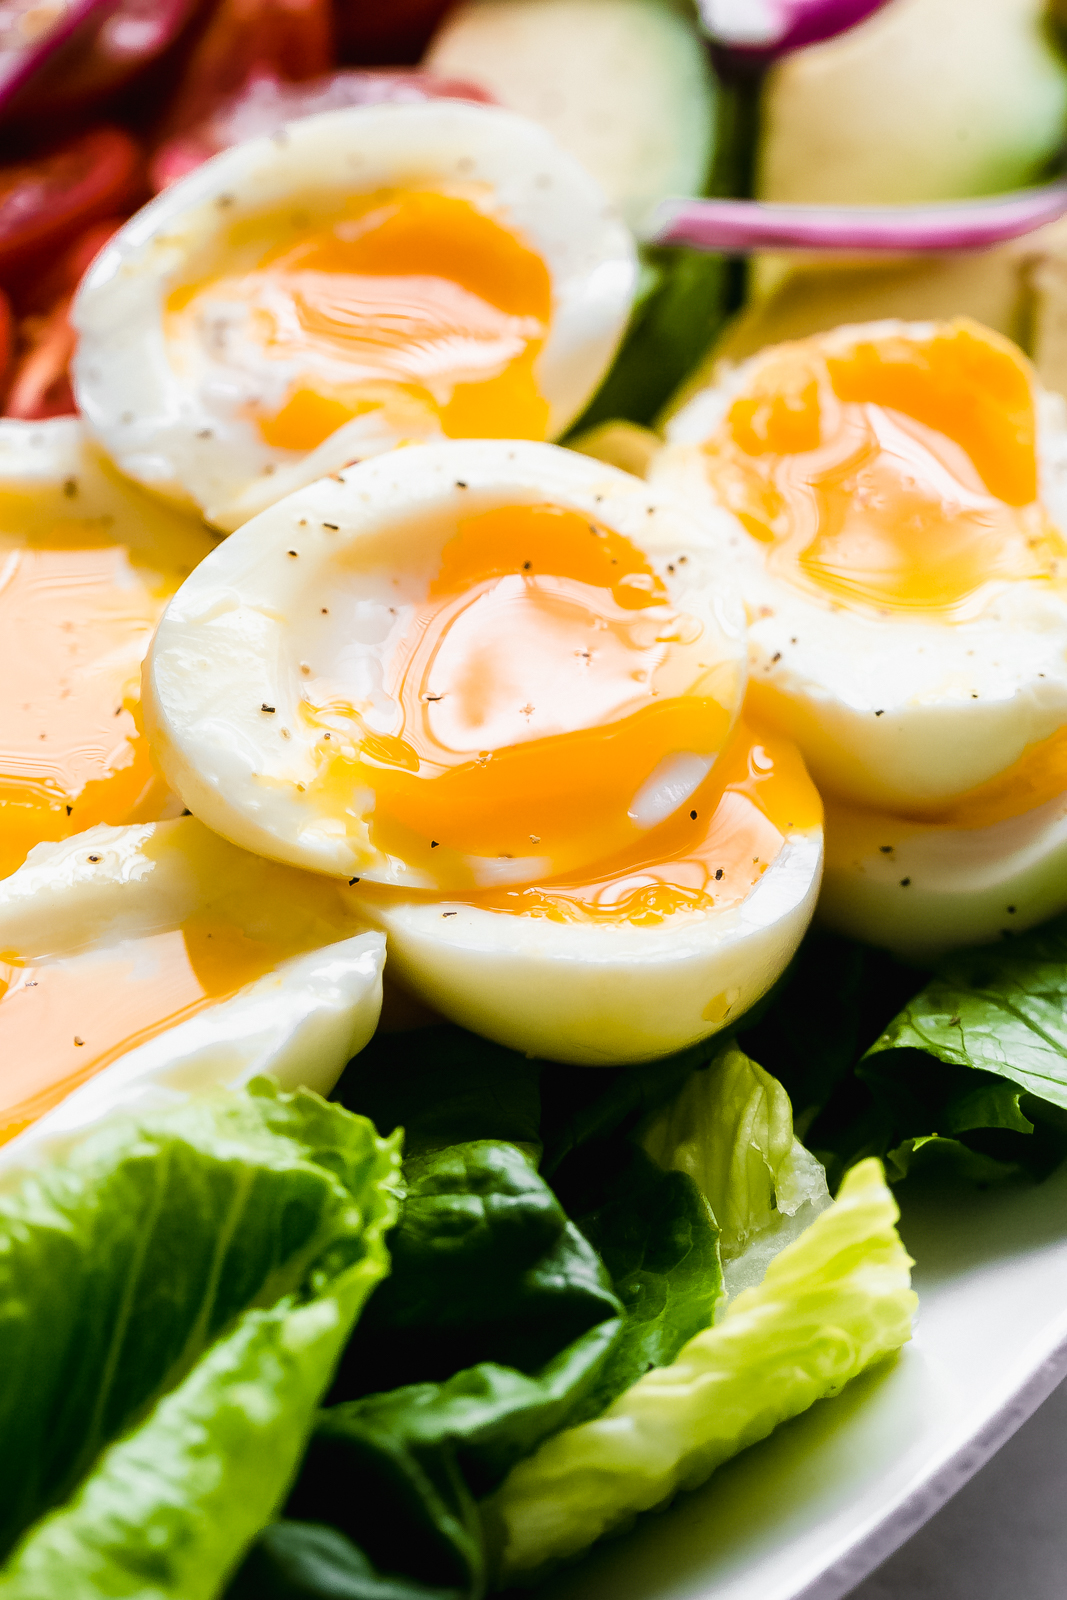 soft boiled eggs with dripping yolks on lettuce